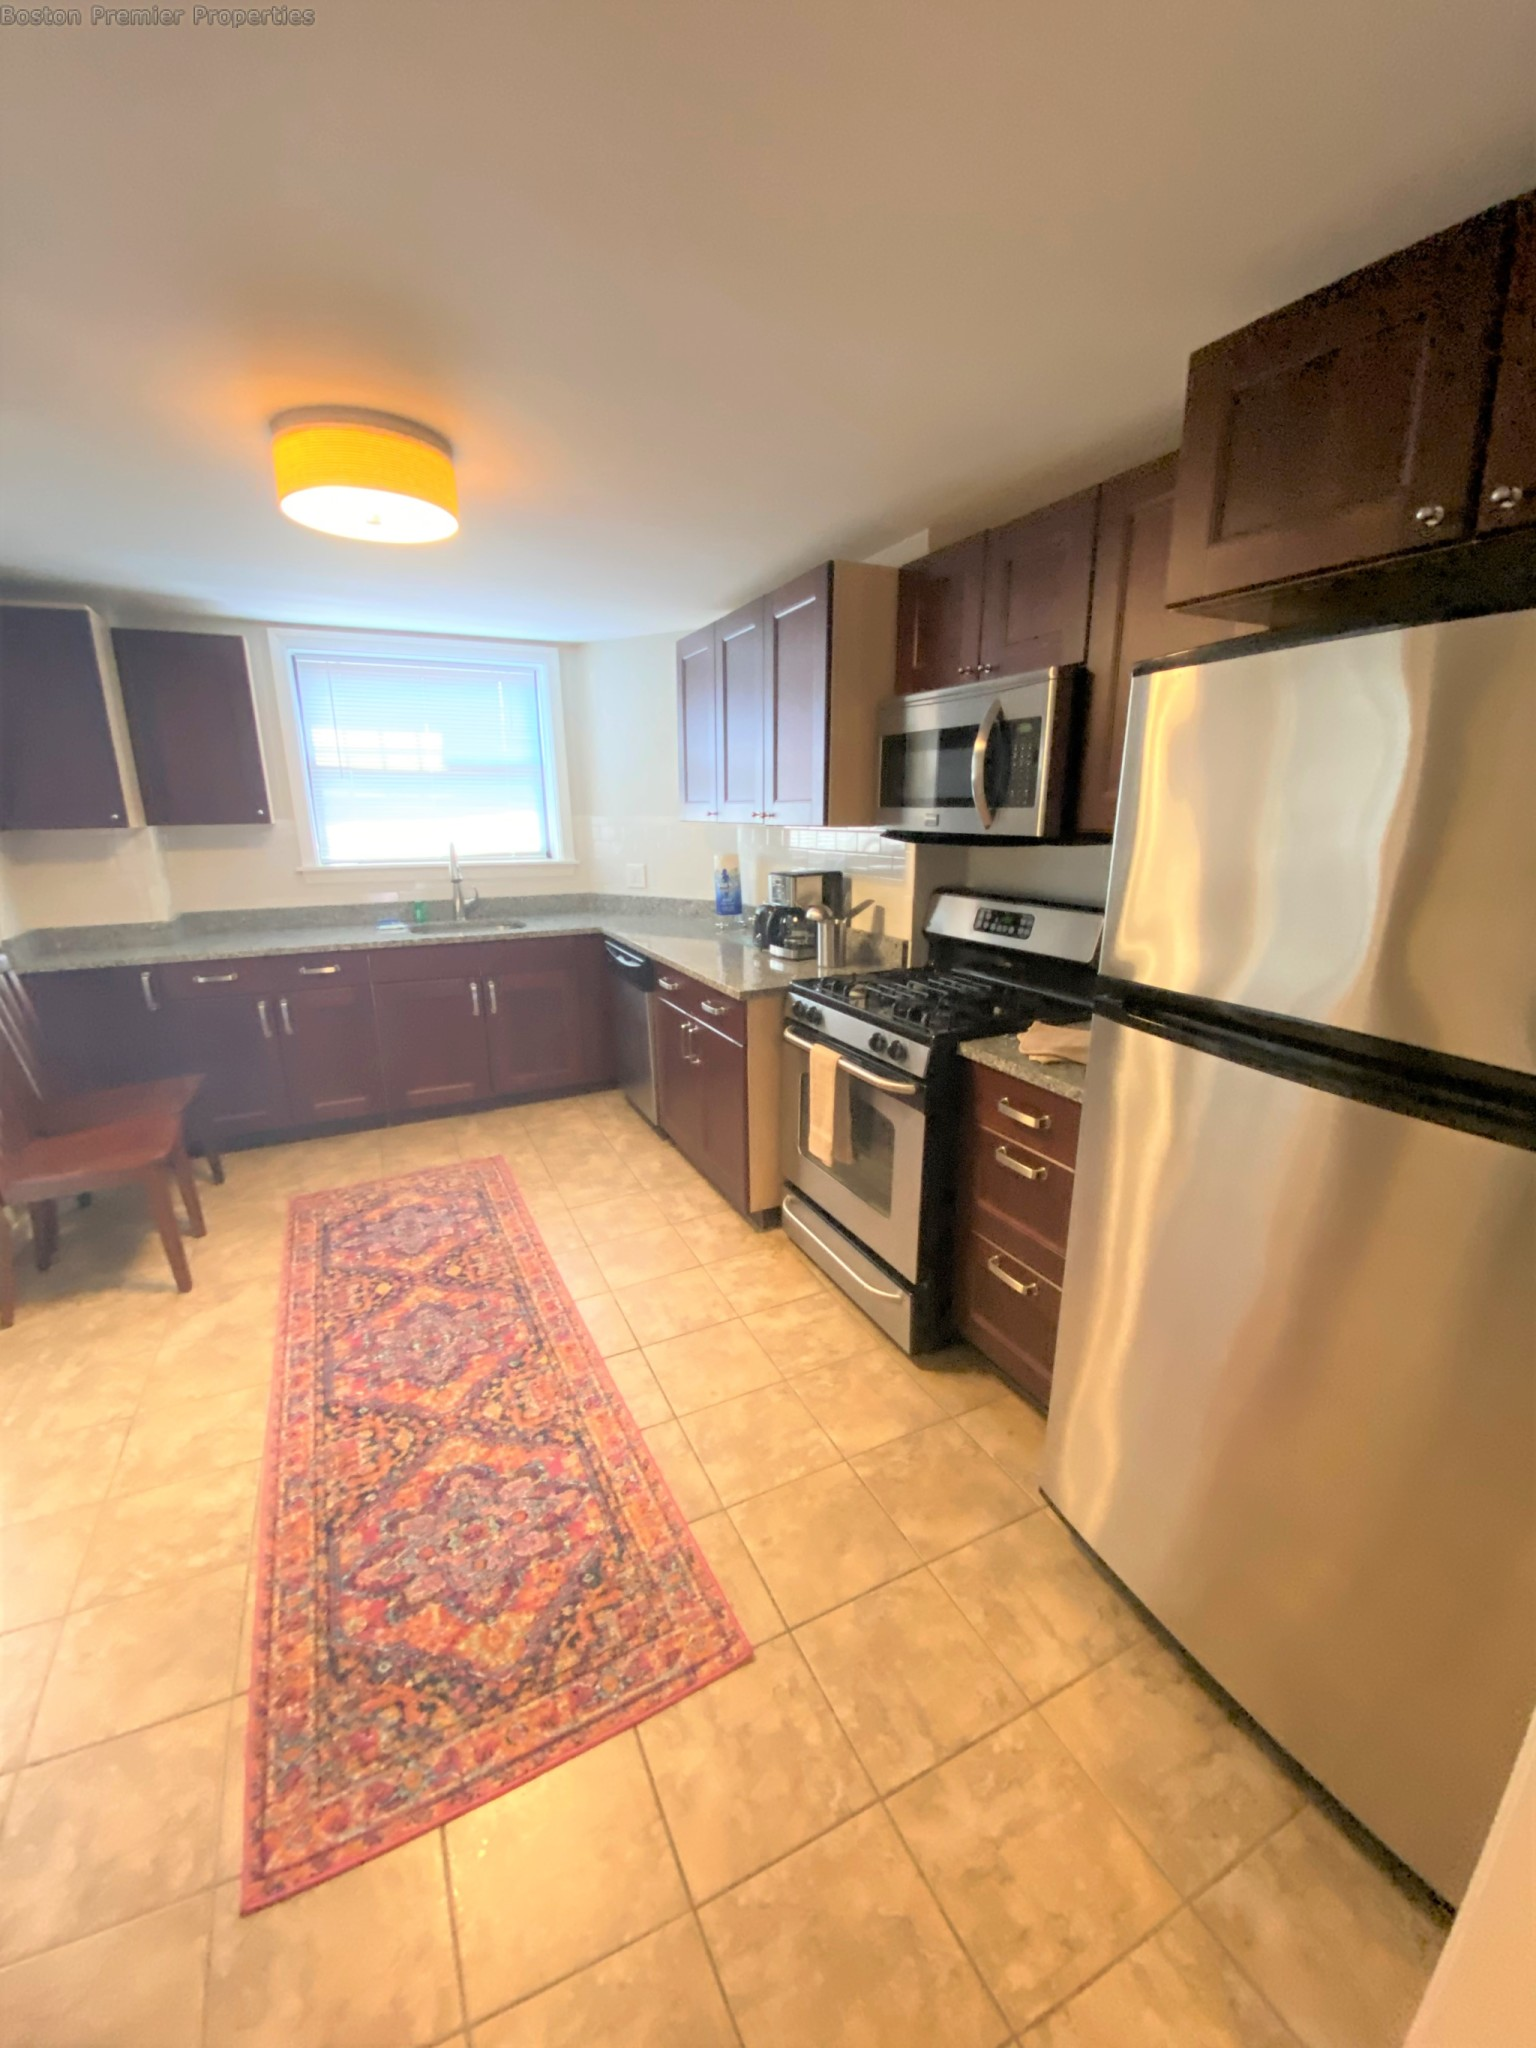 1.5 Beds, 1 Bath apartment in Boston, North End for $2,500